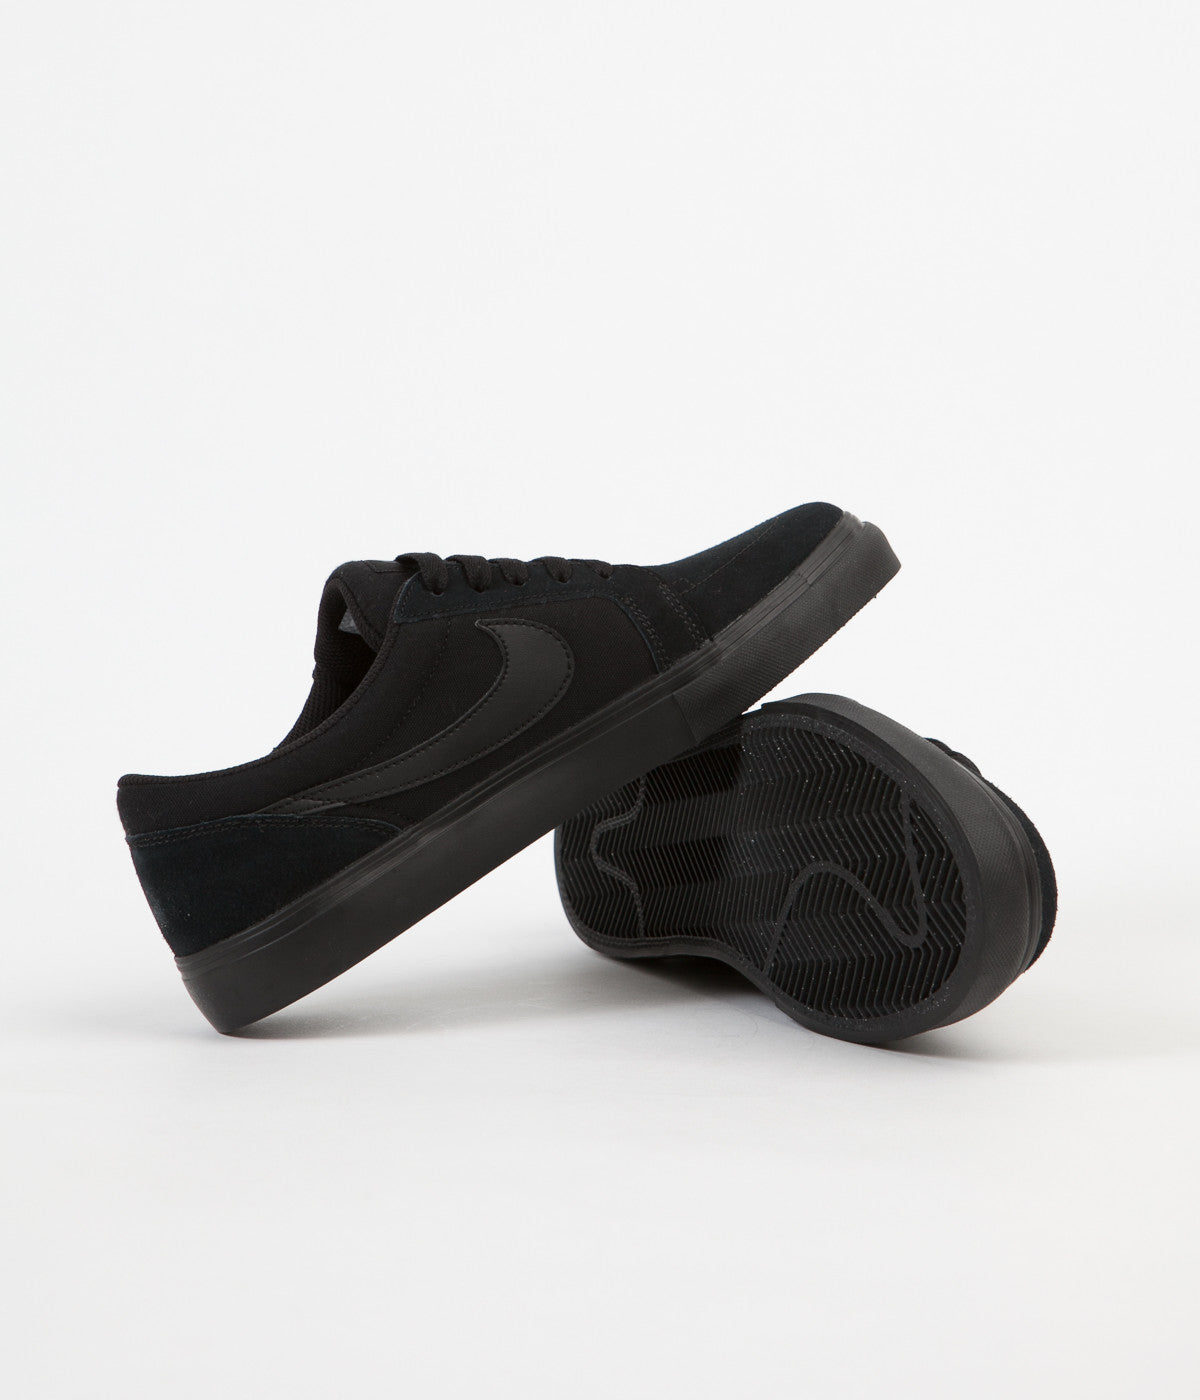 argumento visual María  Nike SB Satire II Shoes - Black / Black - Anthracite | Flatspot